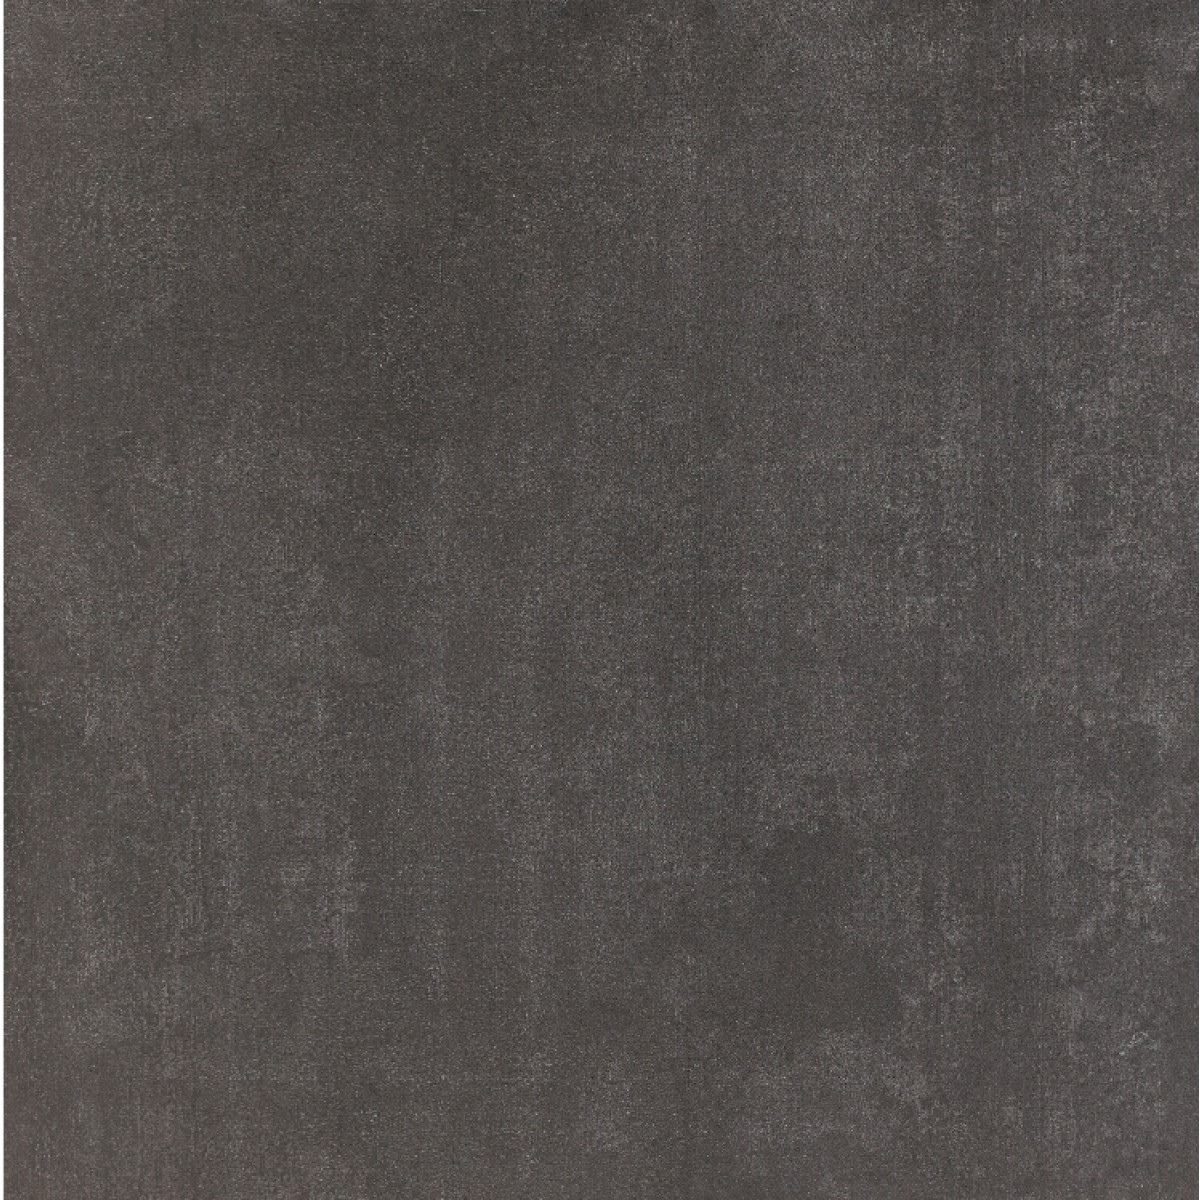 Concrete Dark, matt, 600x600x20 mm